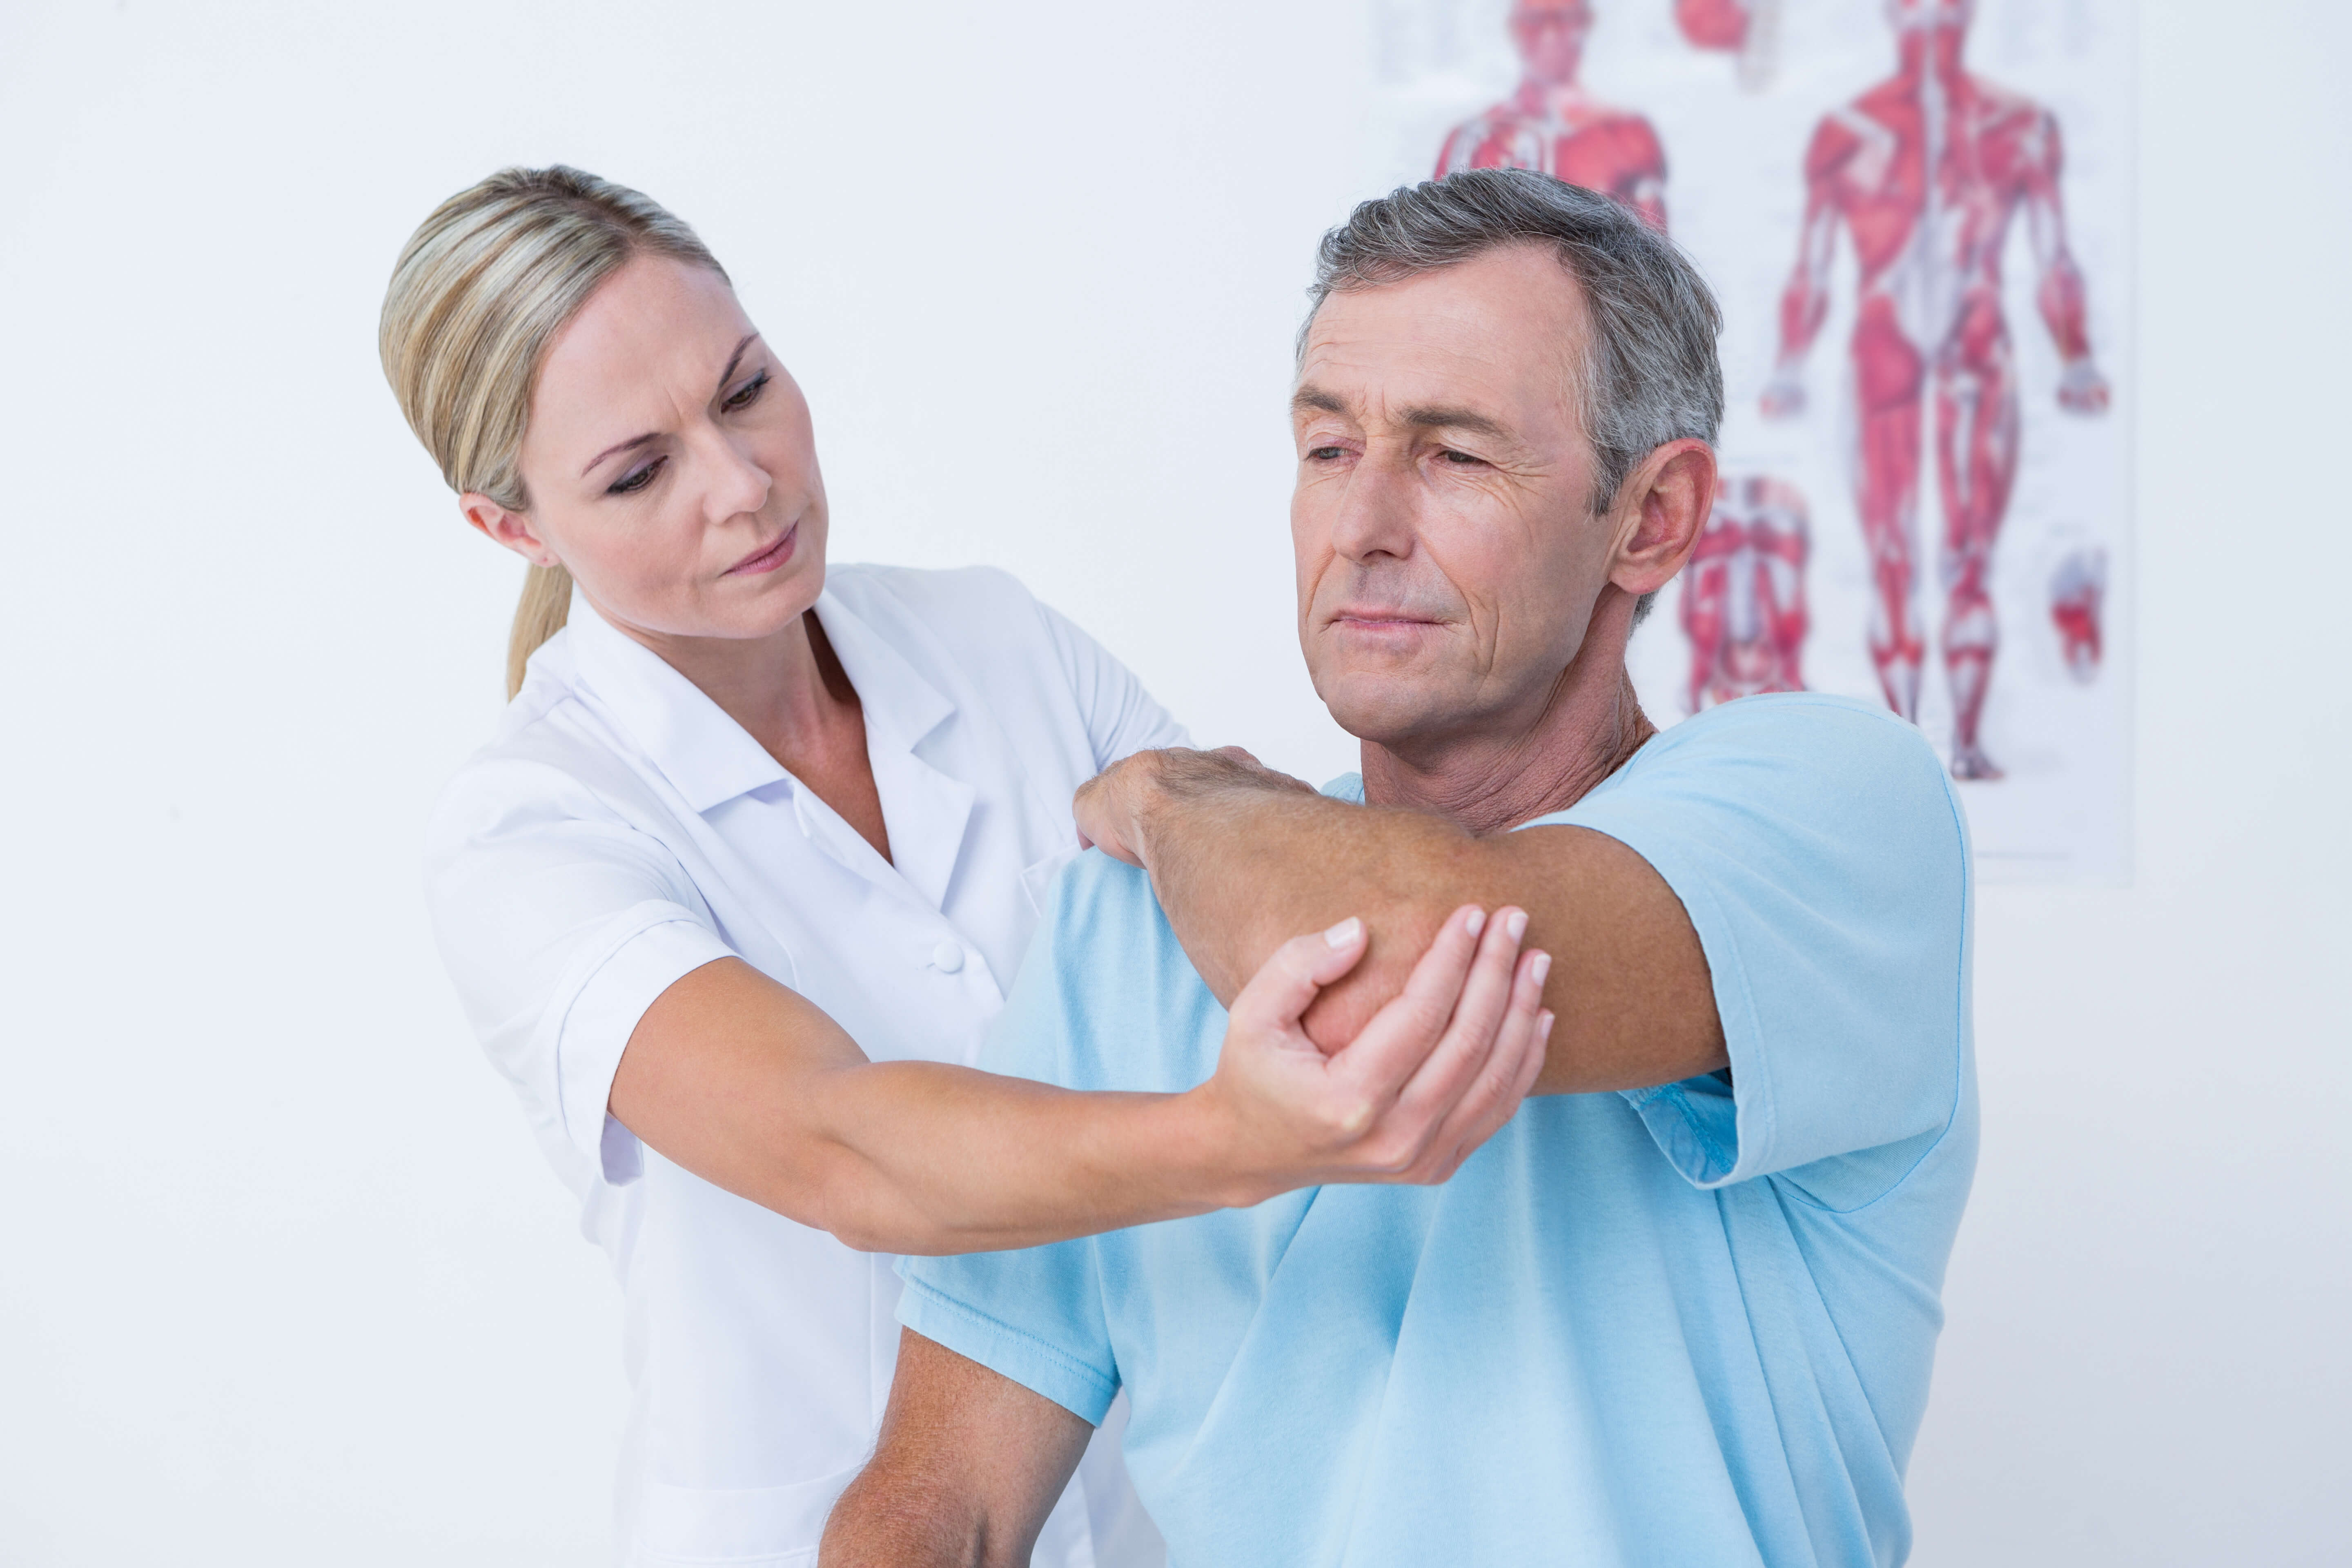 Tennis Elbow Physical Therapy